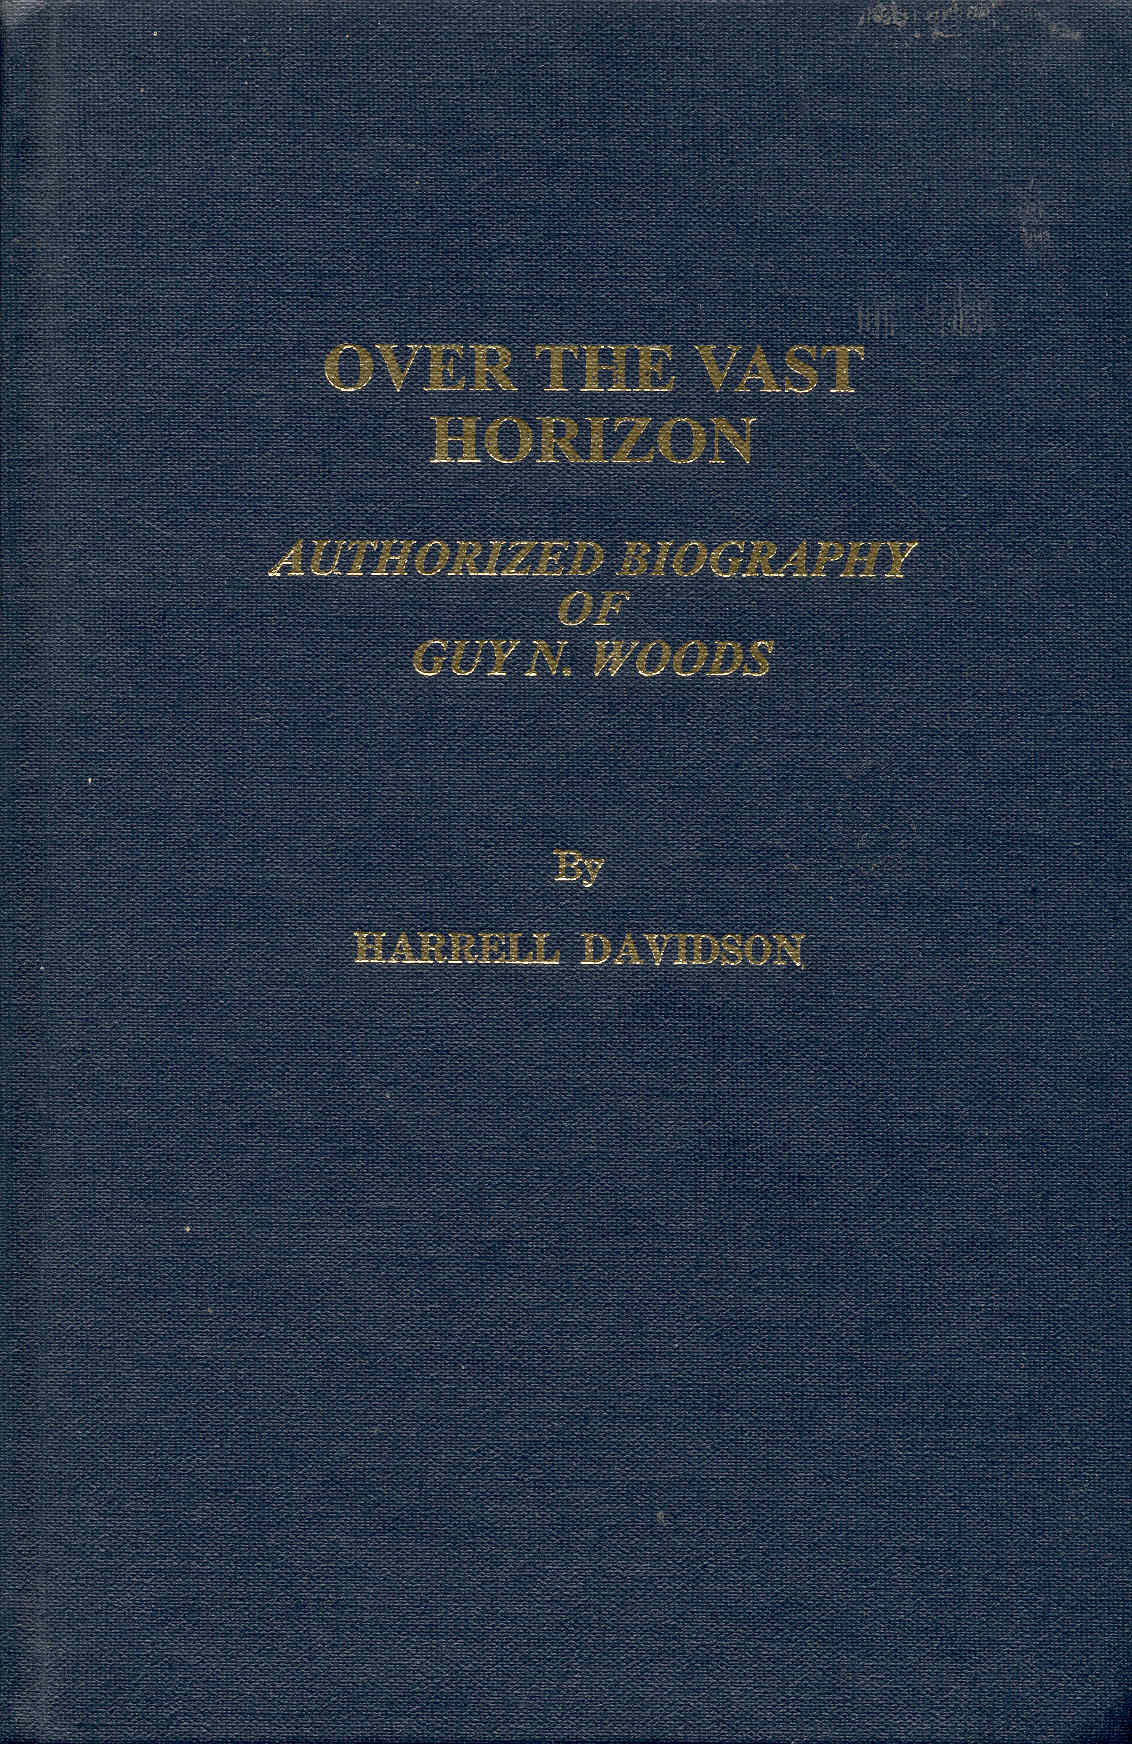 Image for Over the Vast Horizon: Authorized Biography of Guy N. Woods